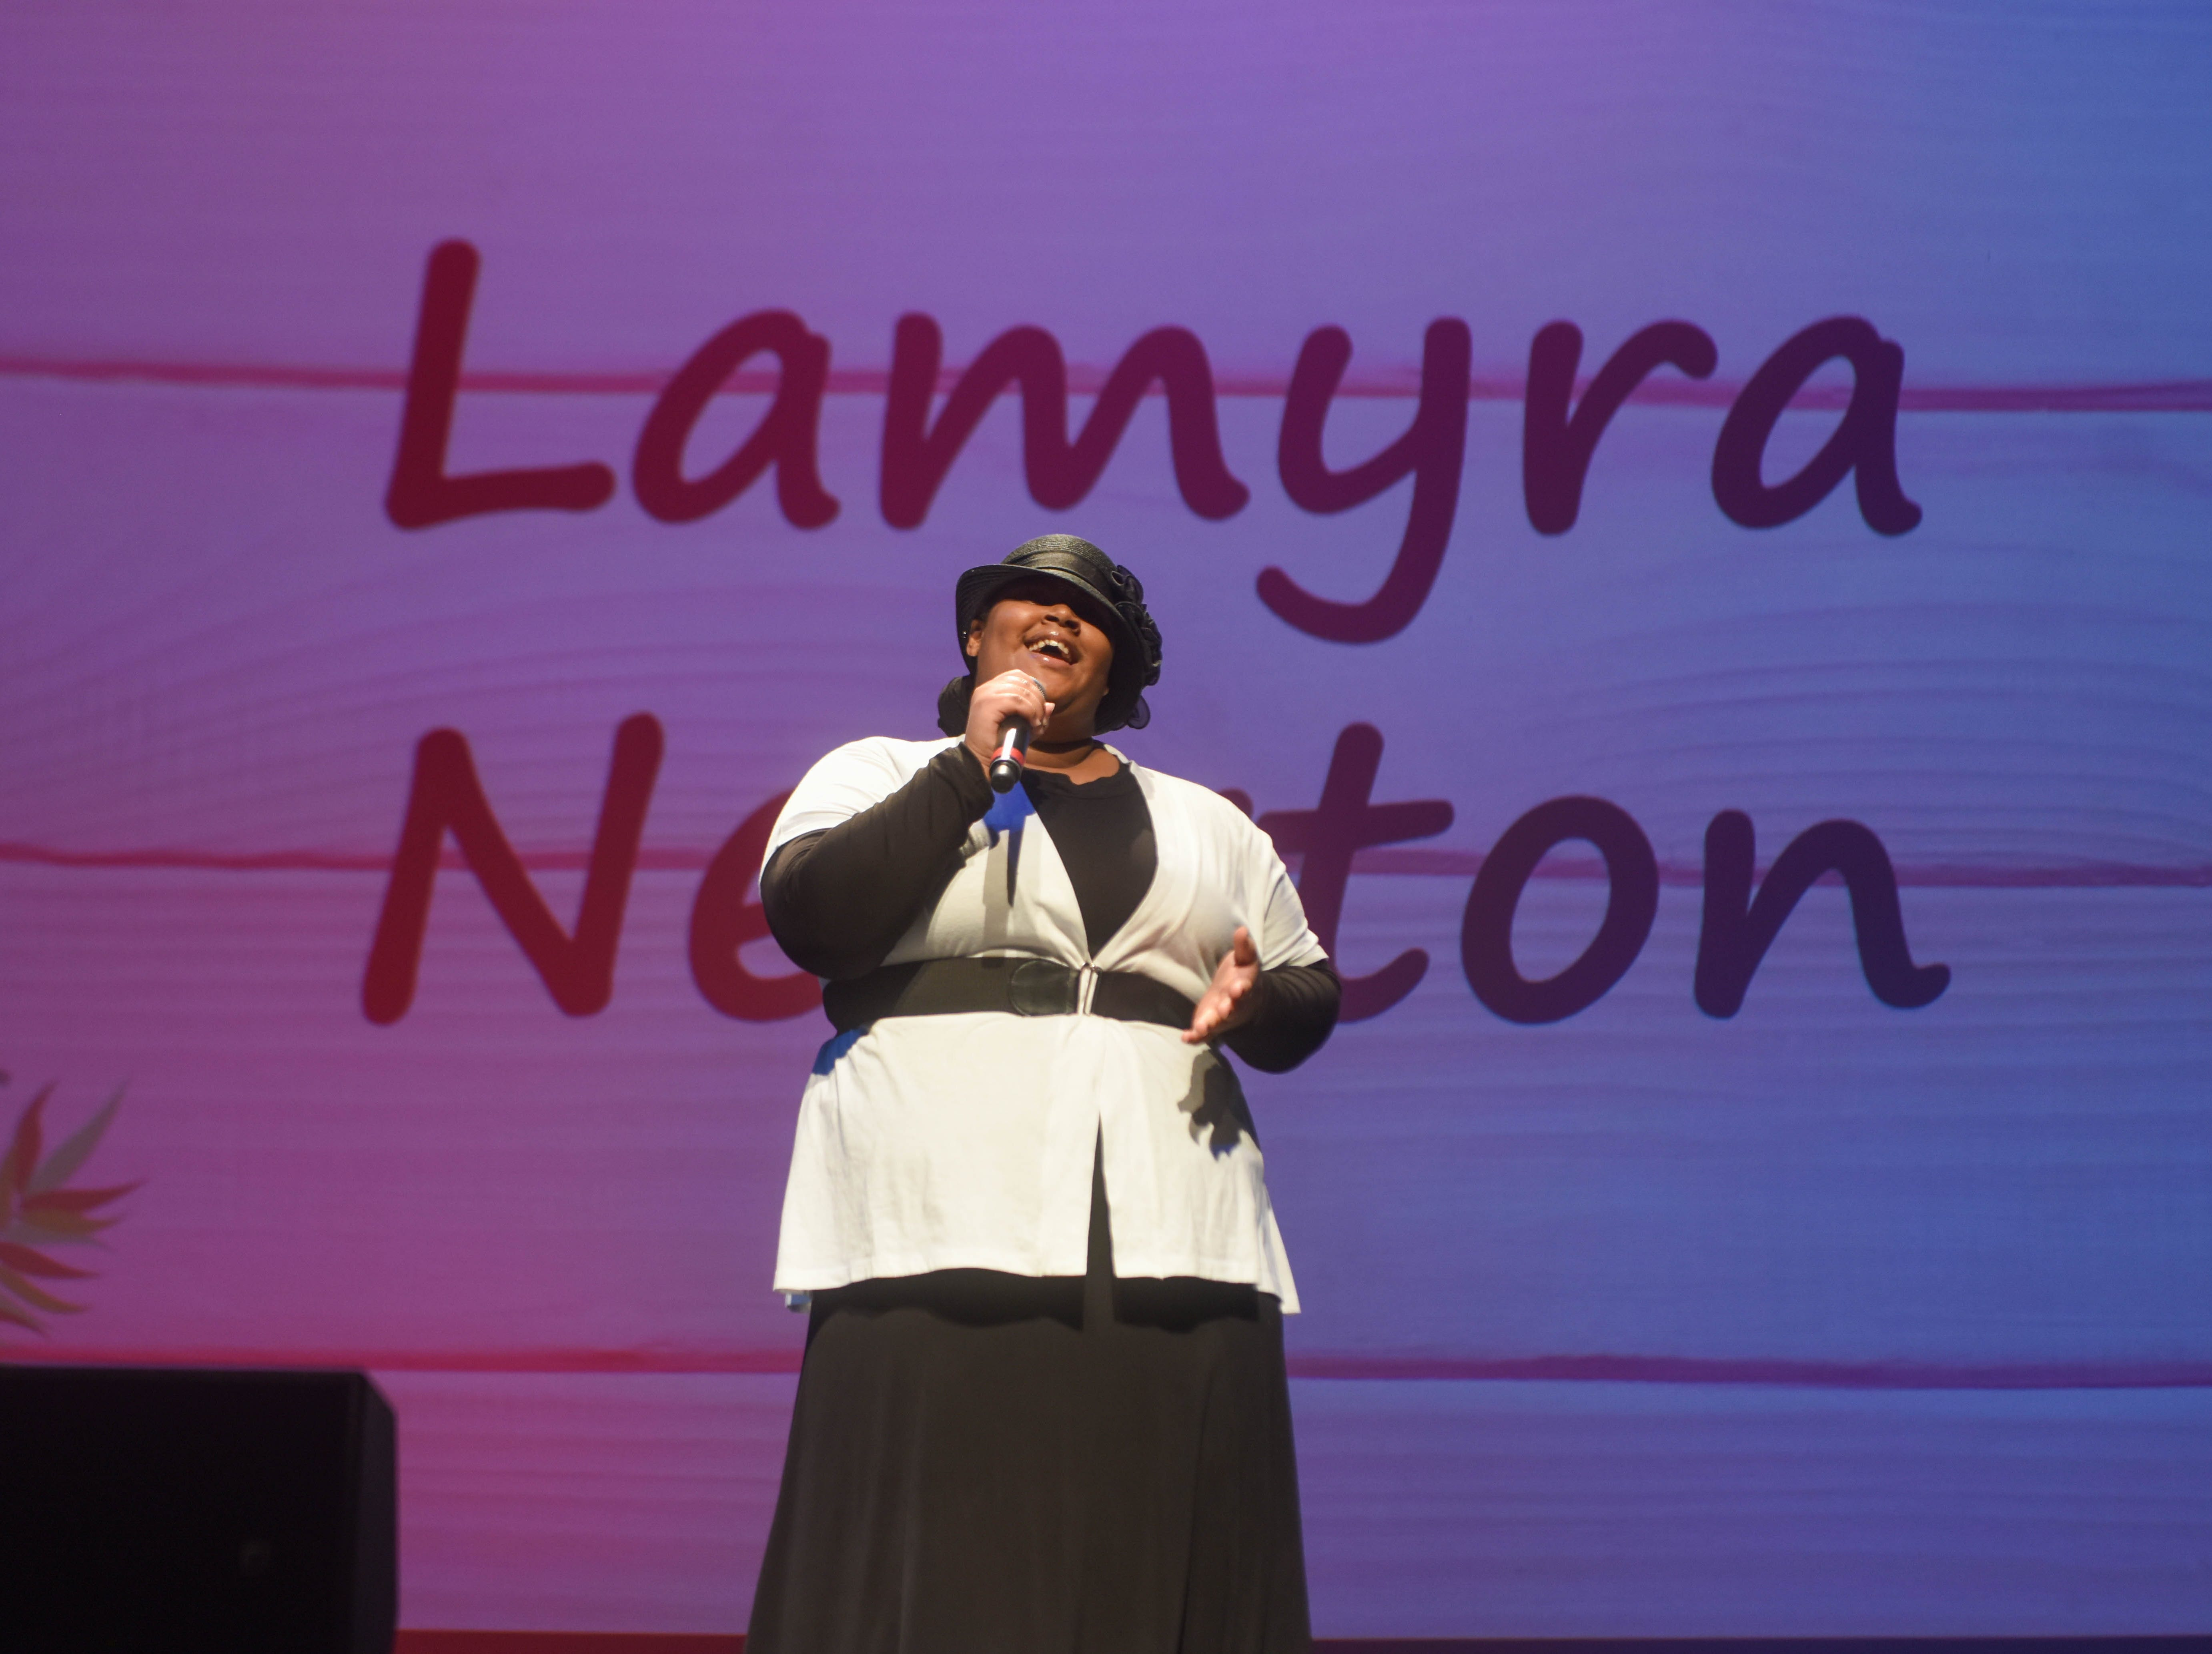 Lamyra Newton. The 2019 Englewood Idol was held at bergenPAC theater. The singing competition is open to any high school student who currently lives or goes to school in Englewood, NJ. This years winner was Genesis Capellan. 01/11/2019